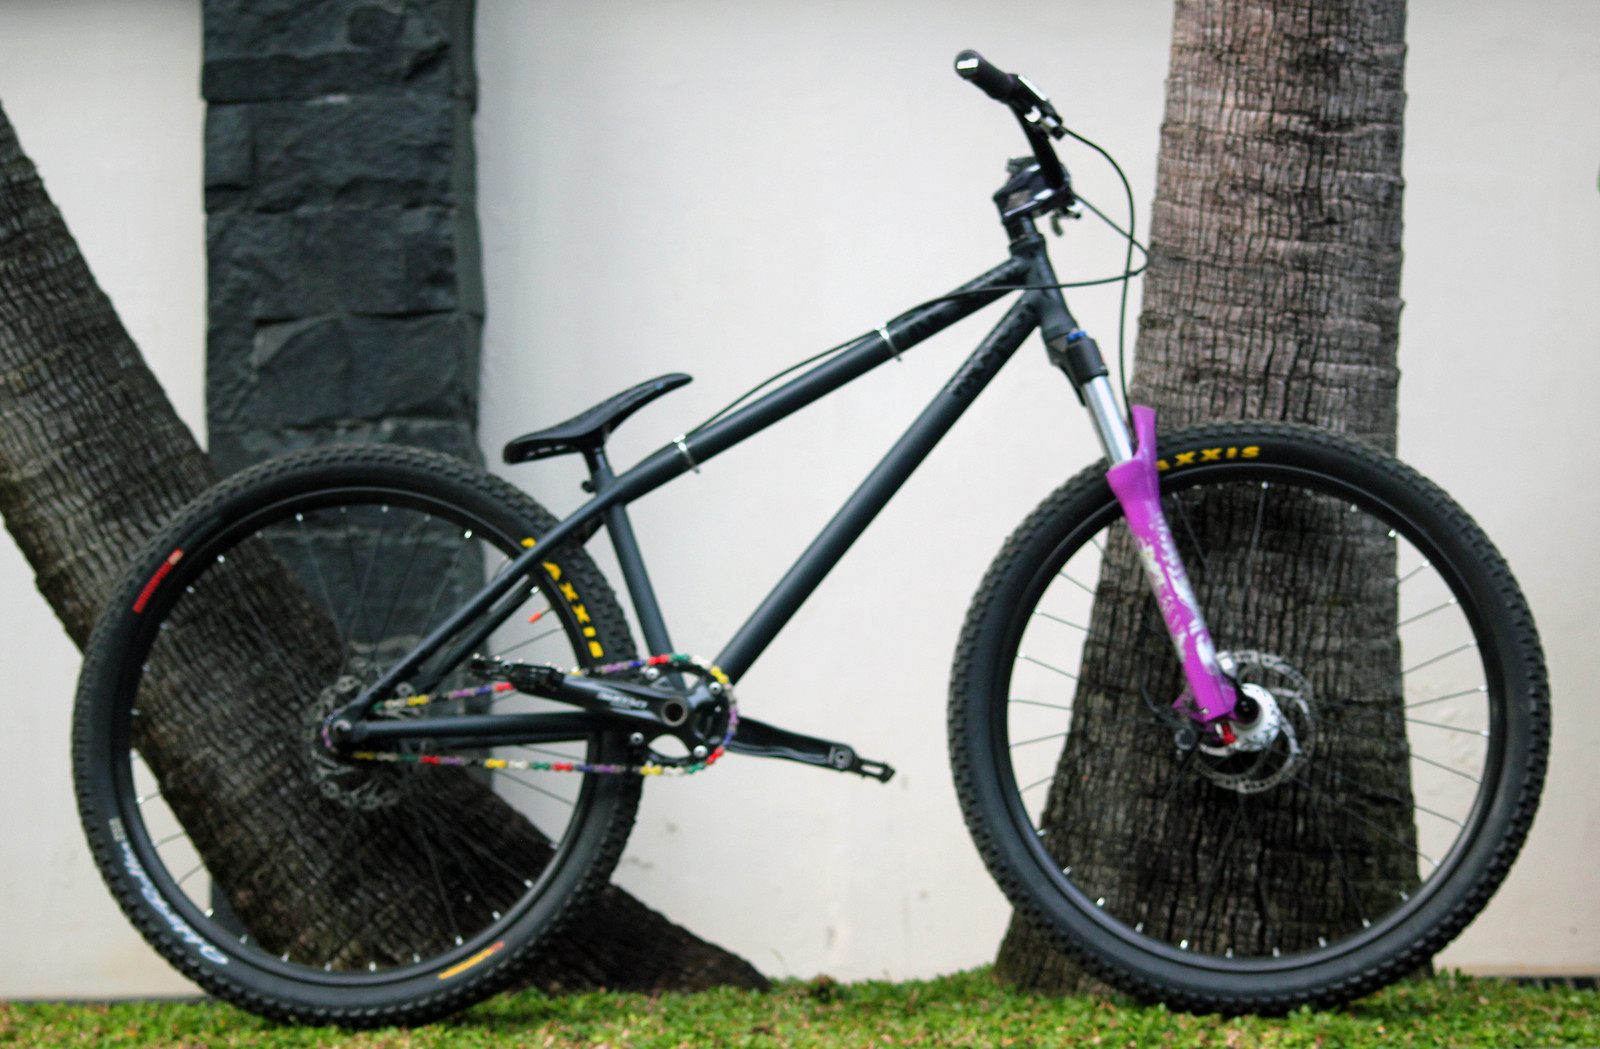 Theting2's NS Bikes